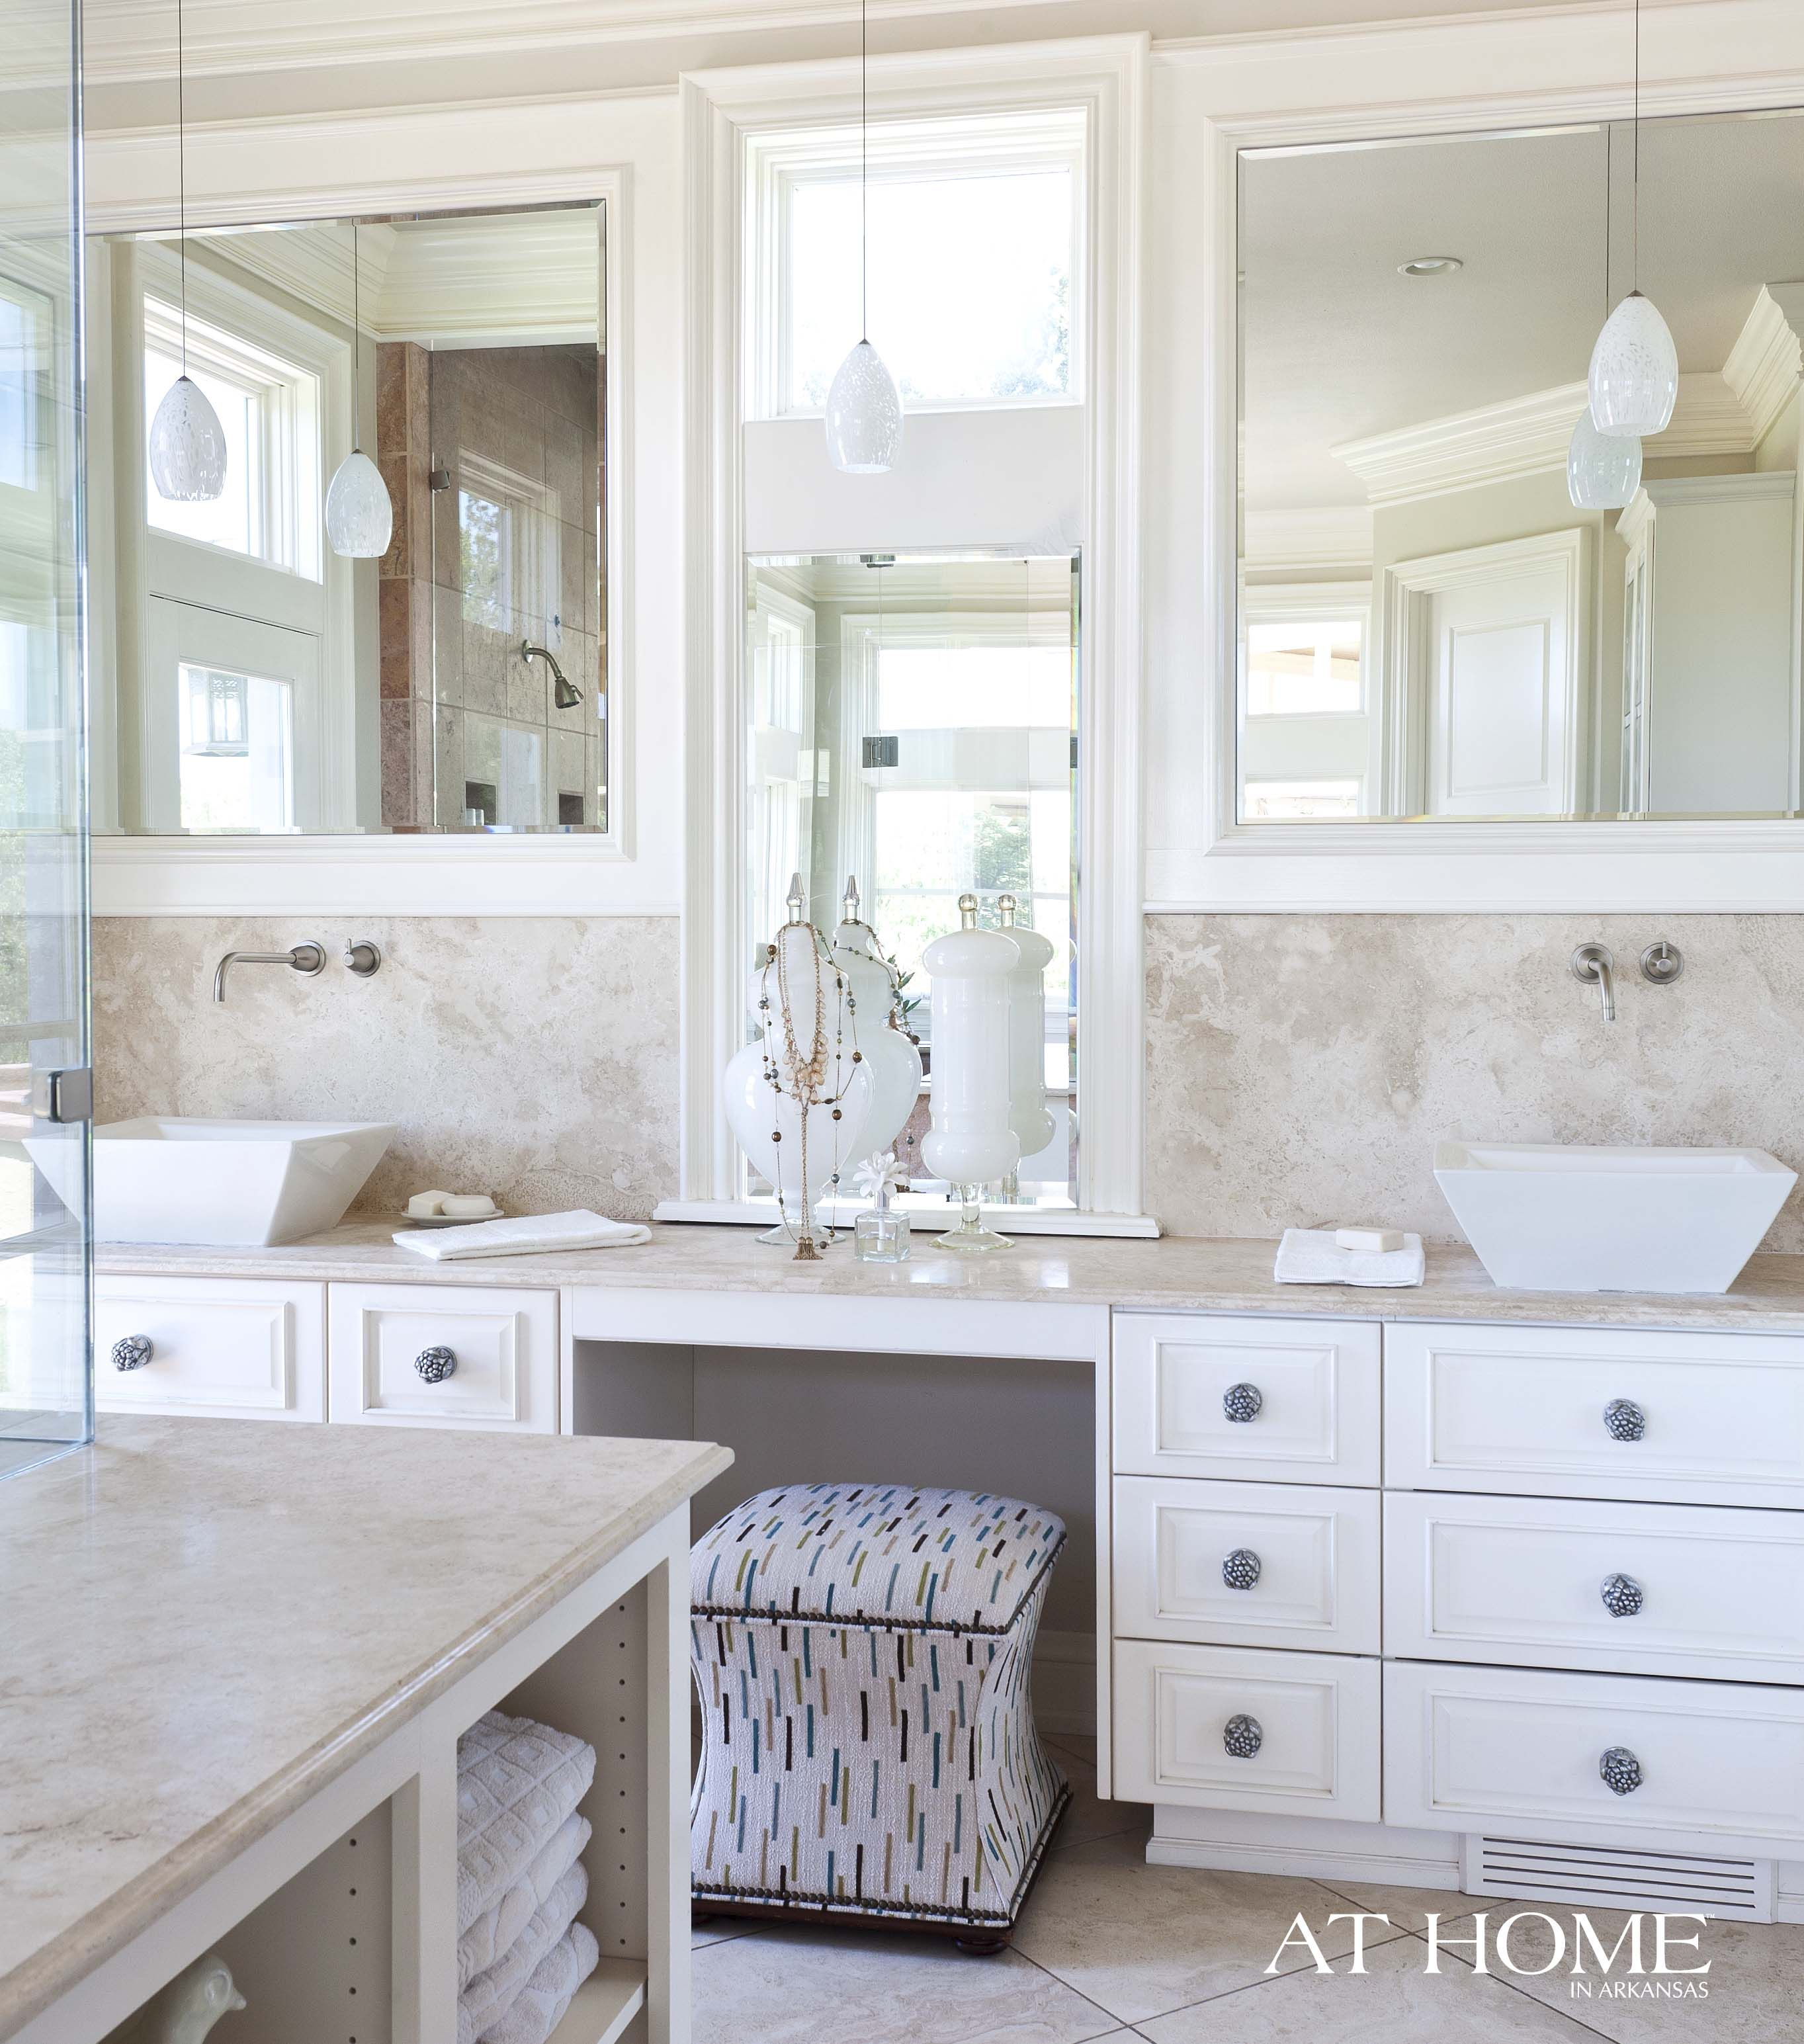 The vanity features his and hers sections as well and includes a